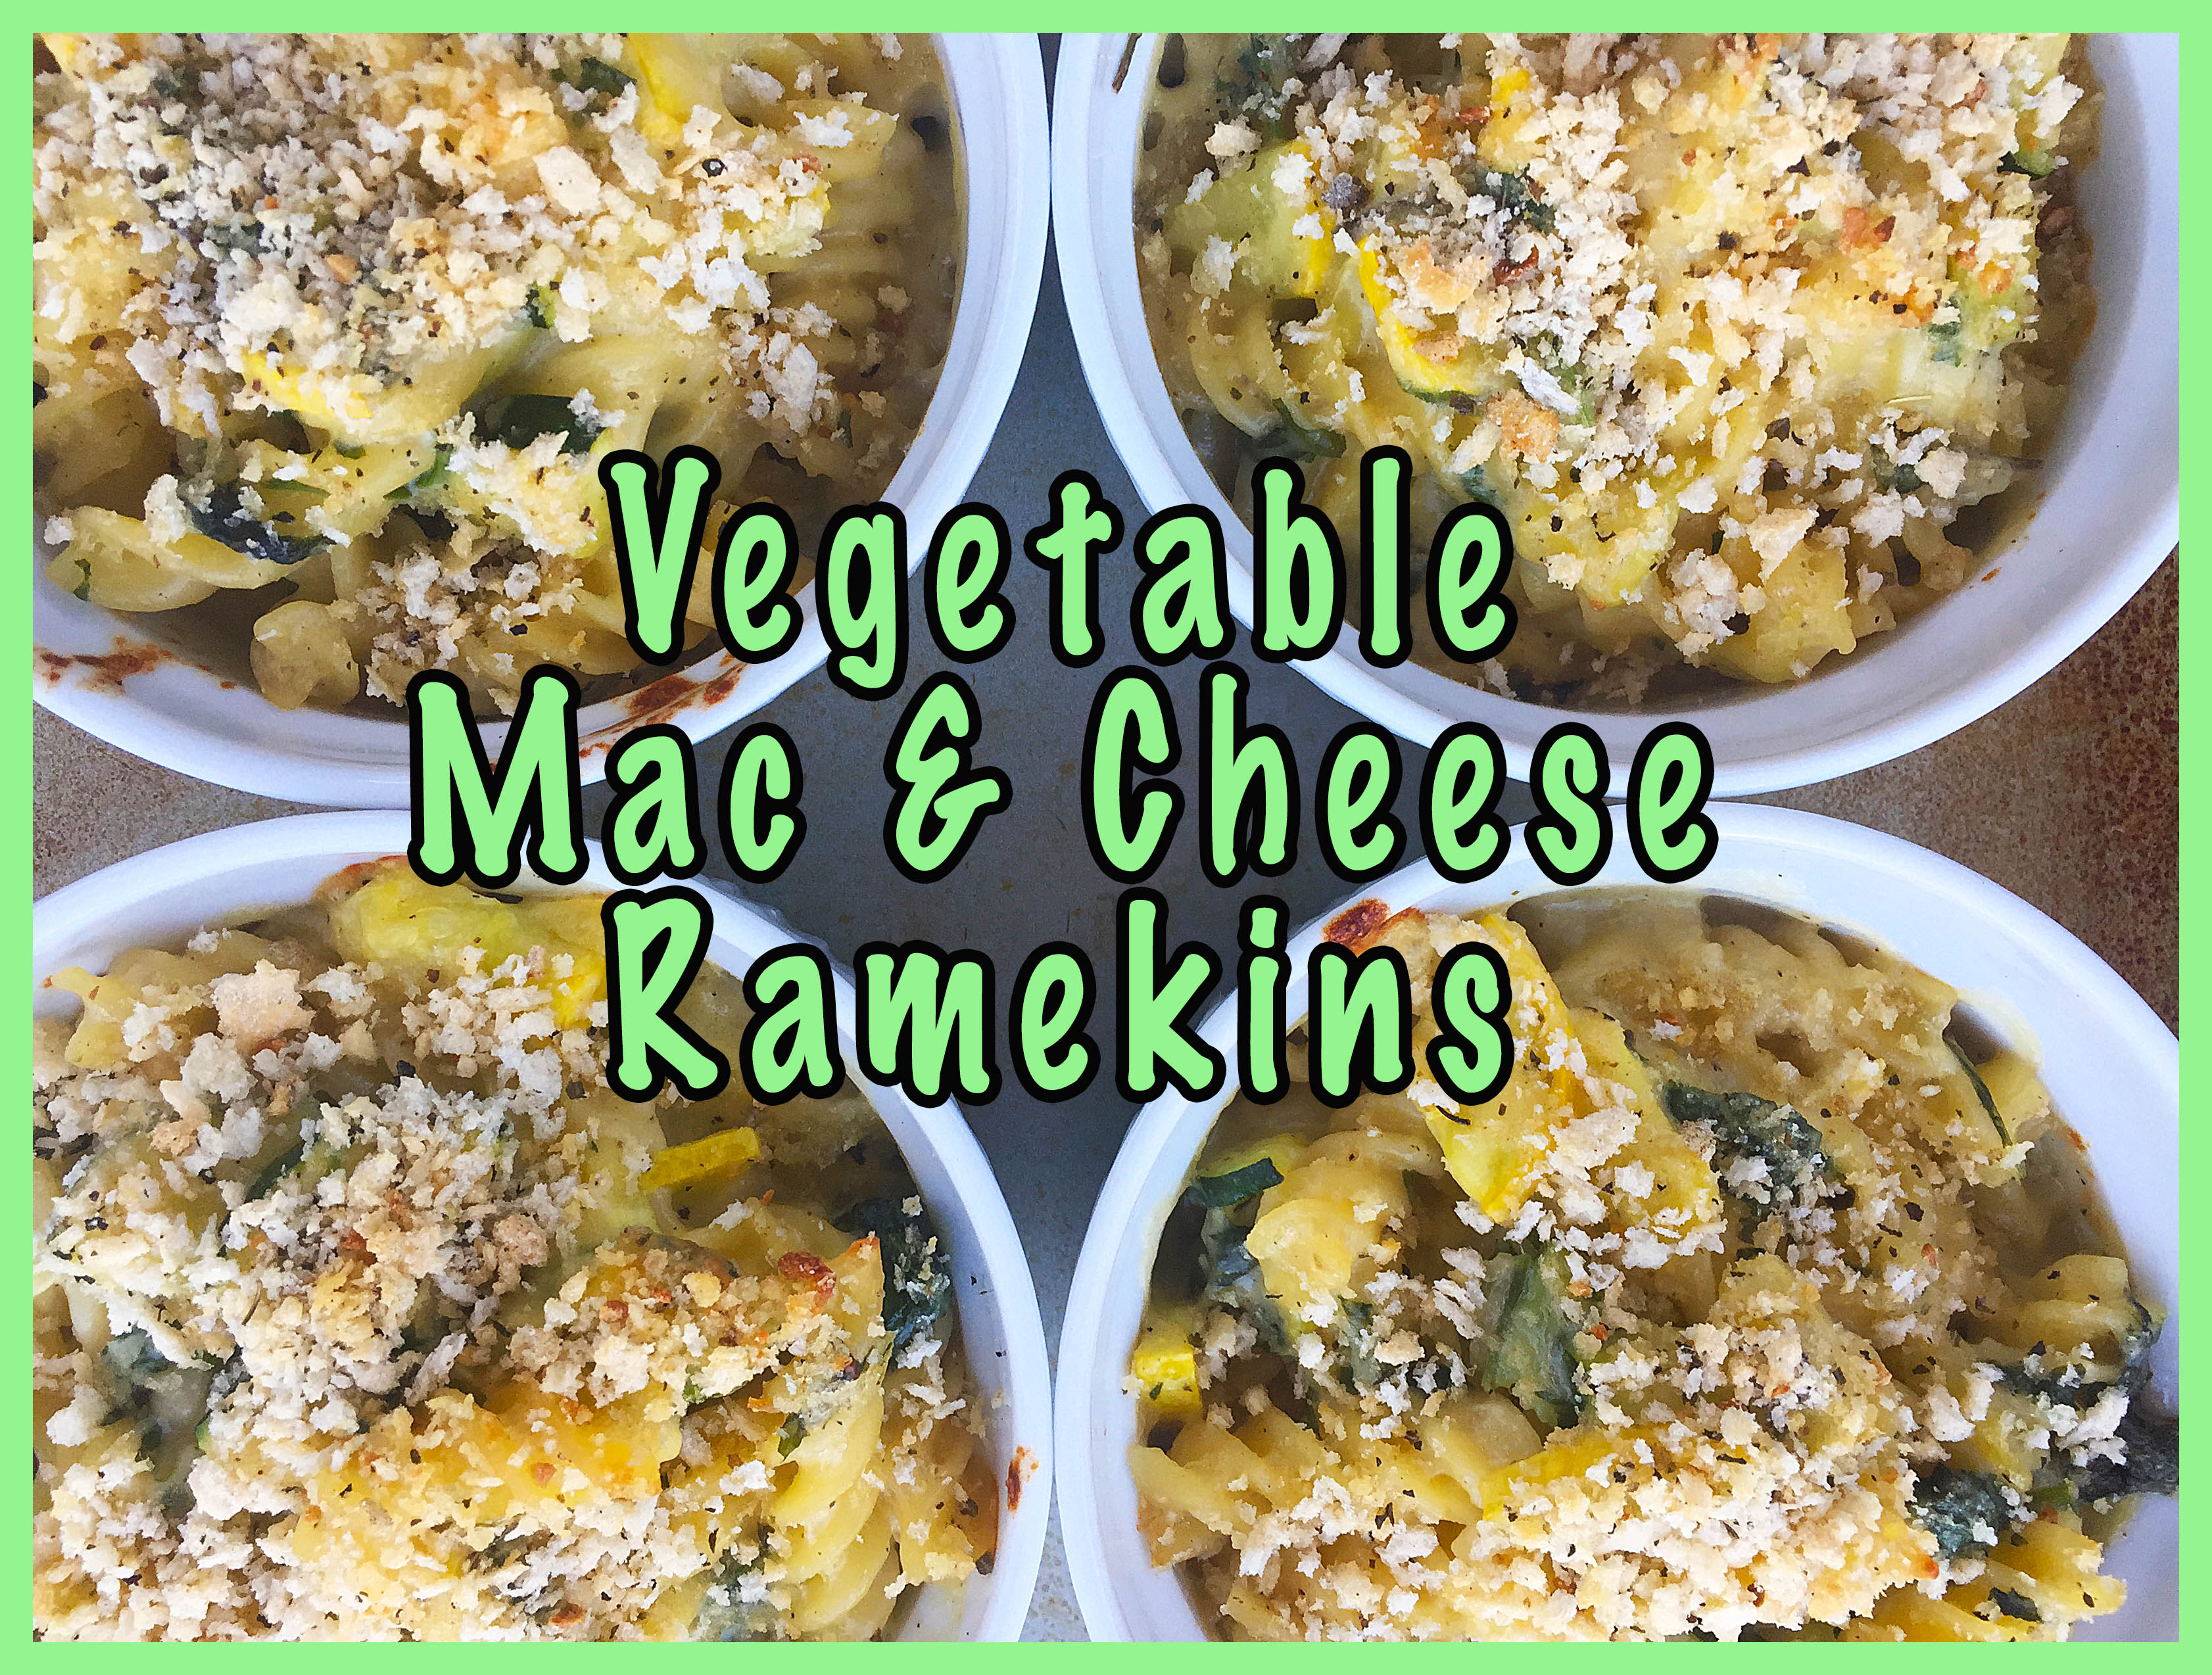 ramekin-mac-cheese